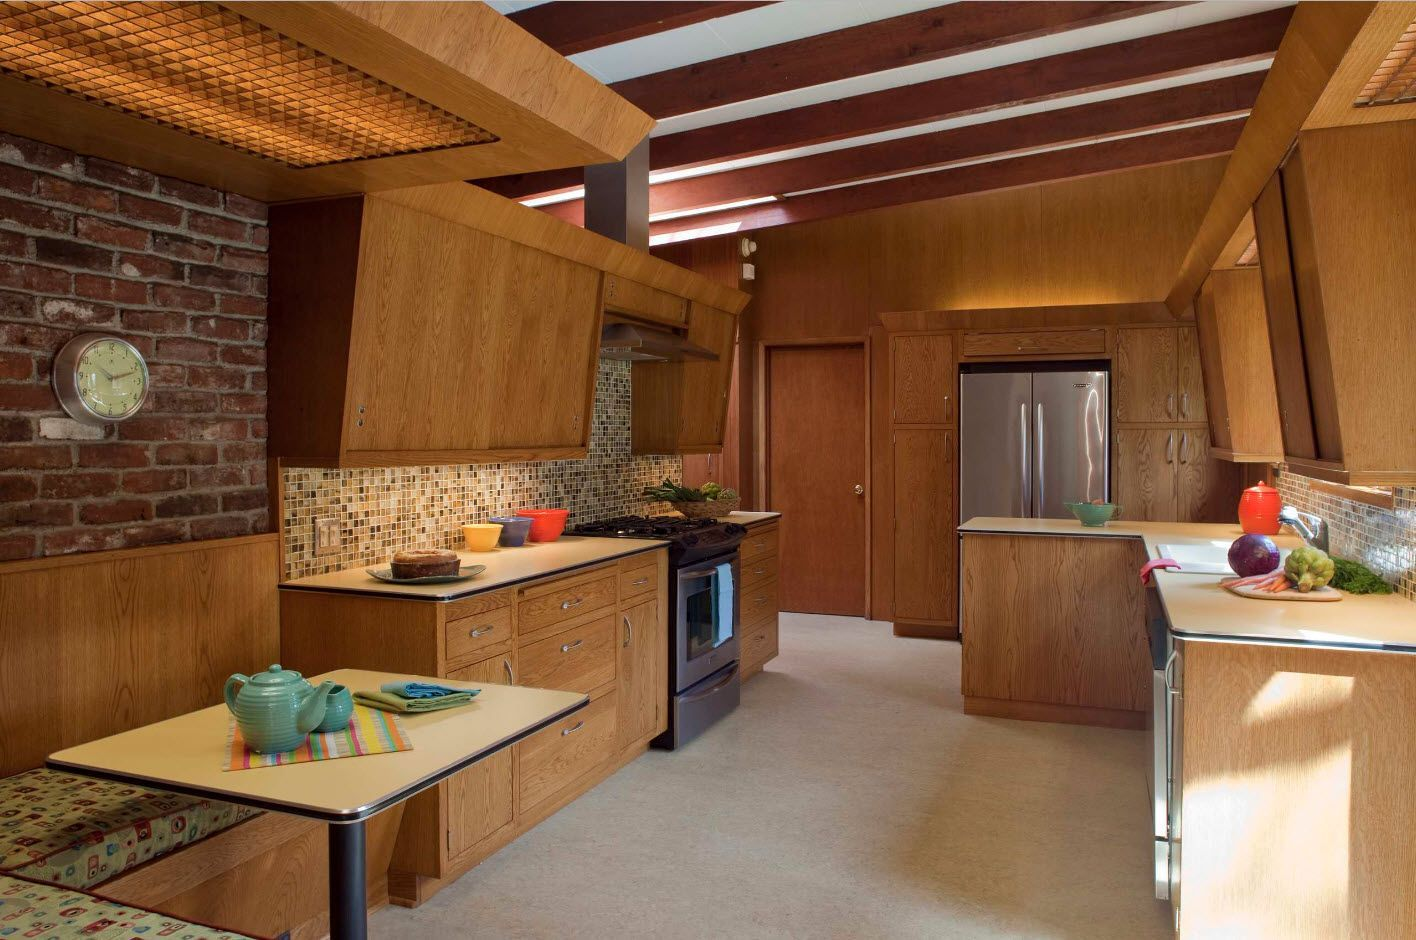 Totally wooden cozy rustic kitchen design 2017